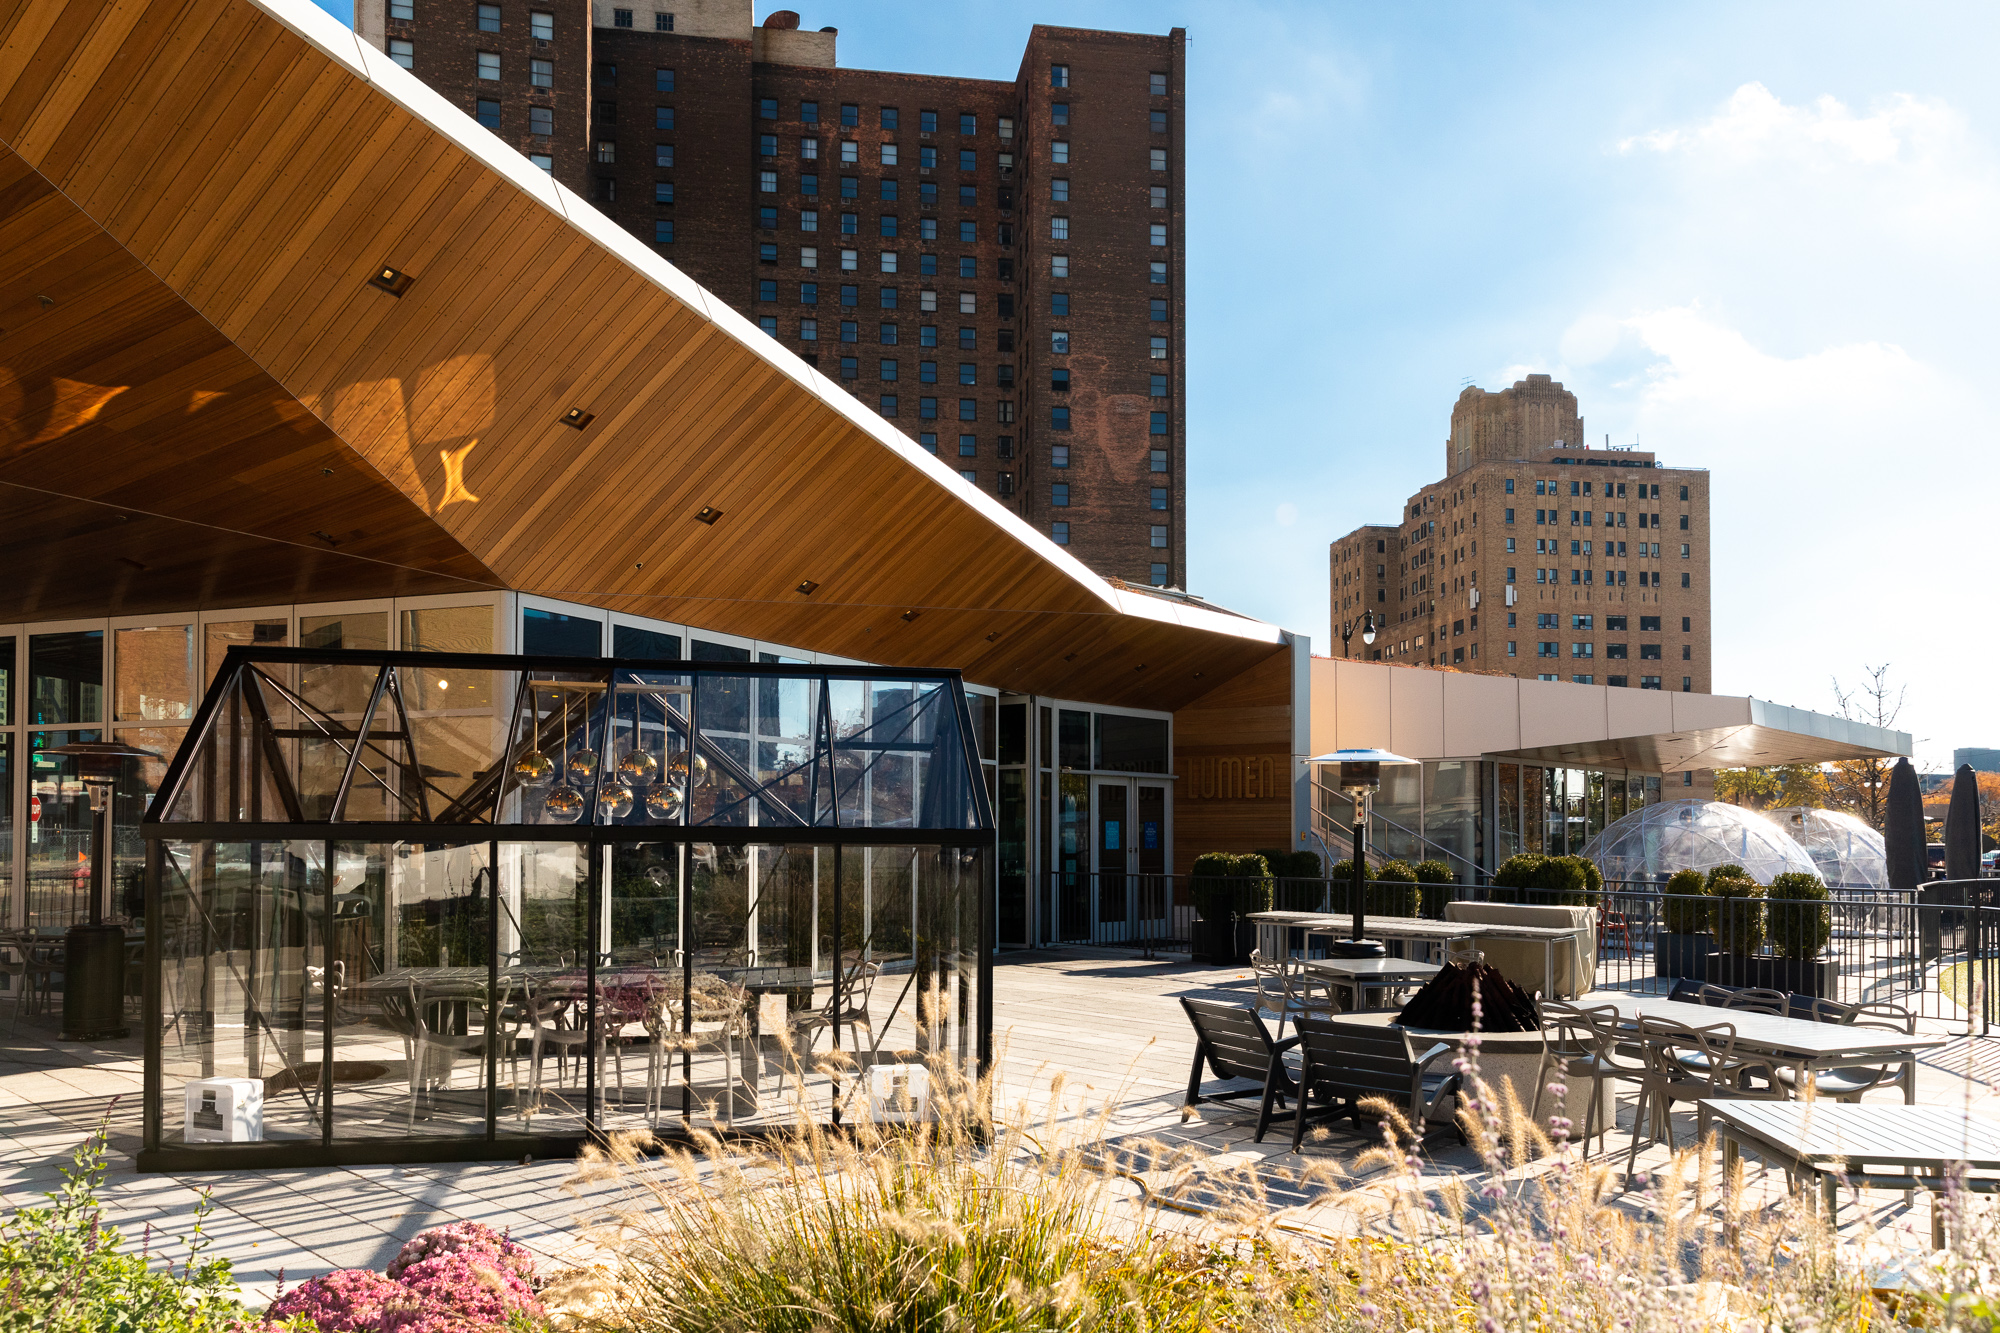 Geodesic domes and glass dining enclosures stand outside of Lumen in Detroit on a sunny fall day.